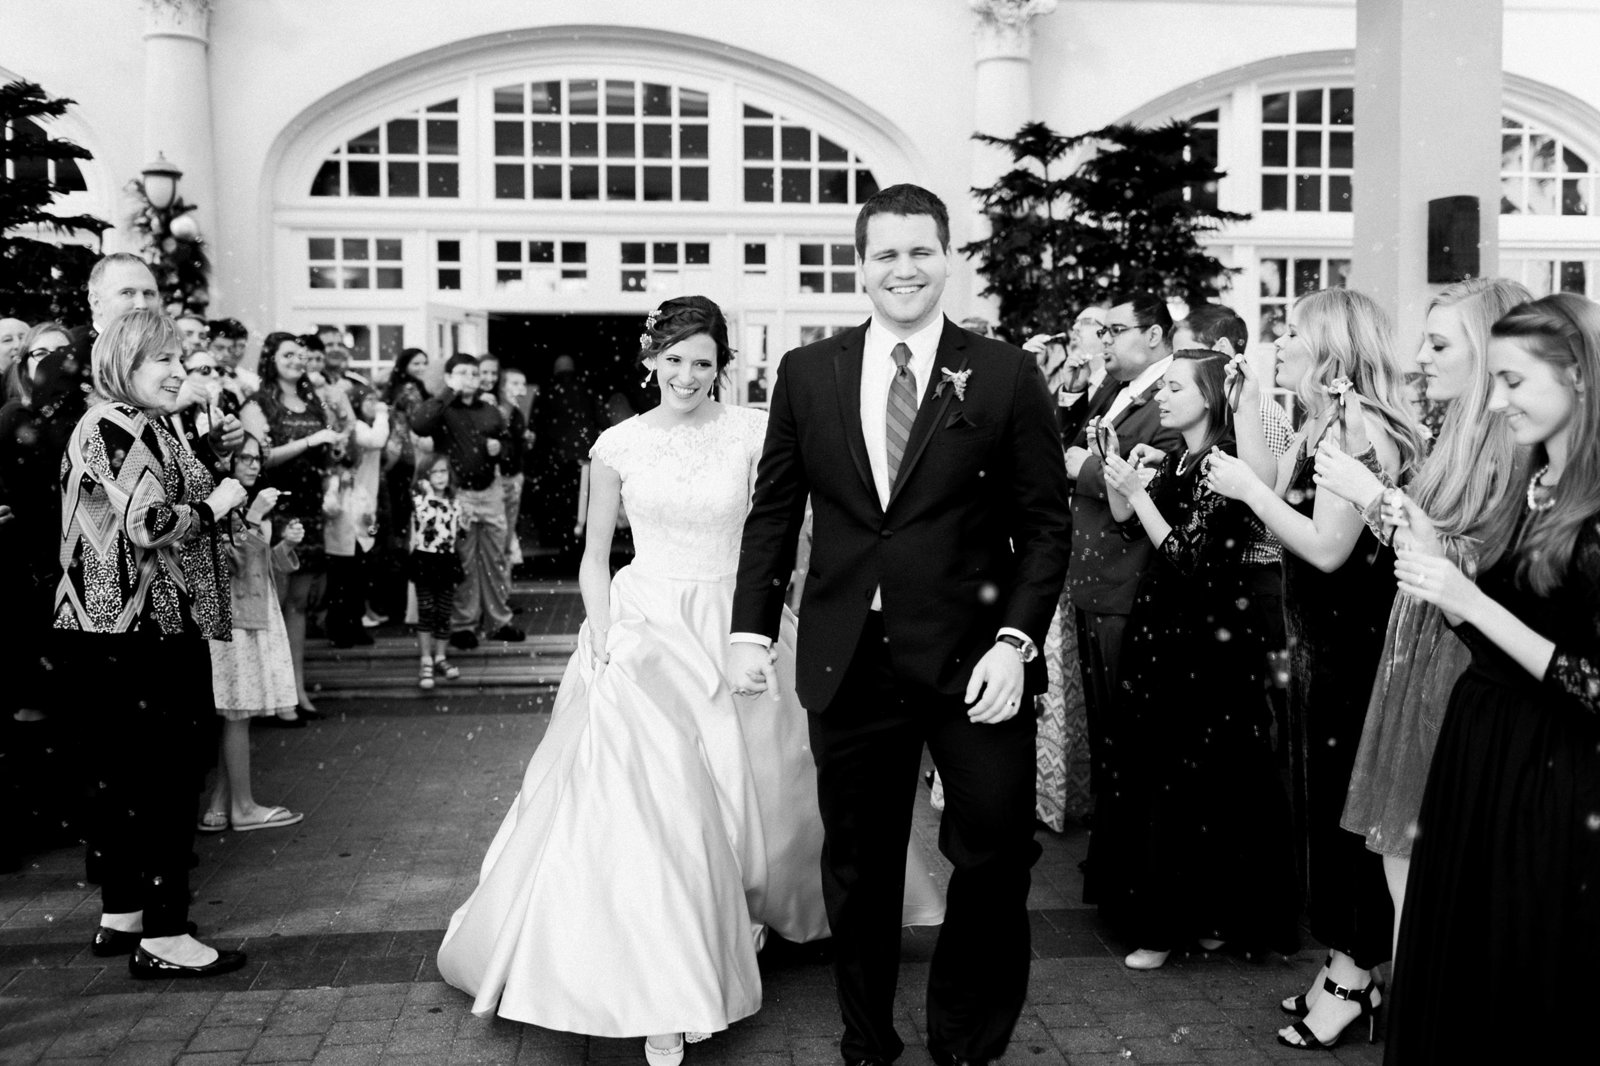 Black and white wedding photography of Bride and Groom exiting their classic wedding ceremony.